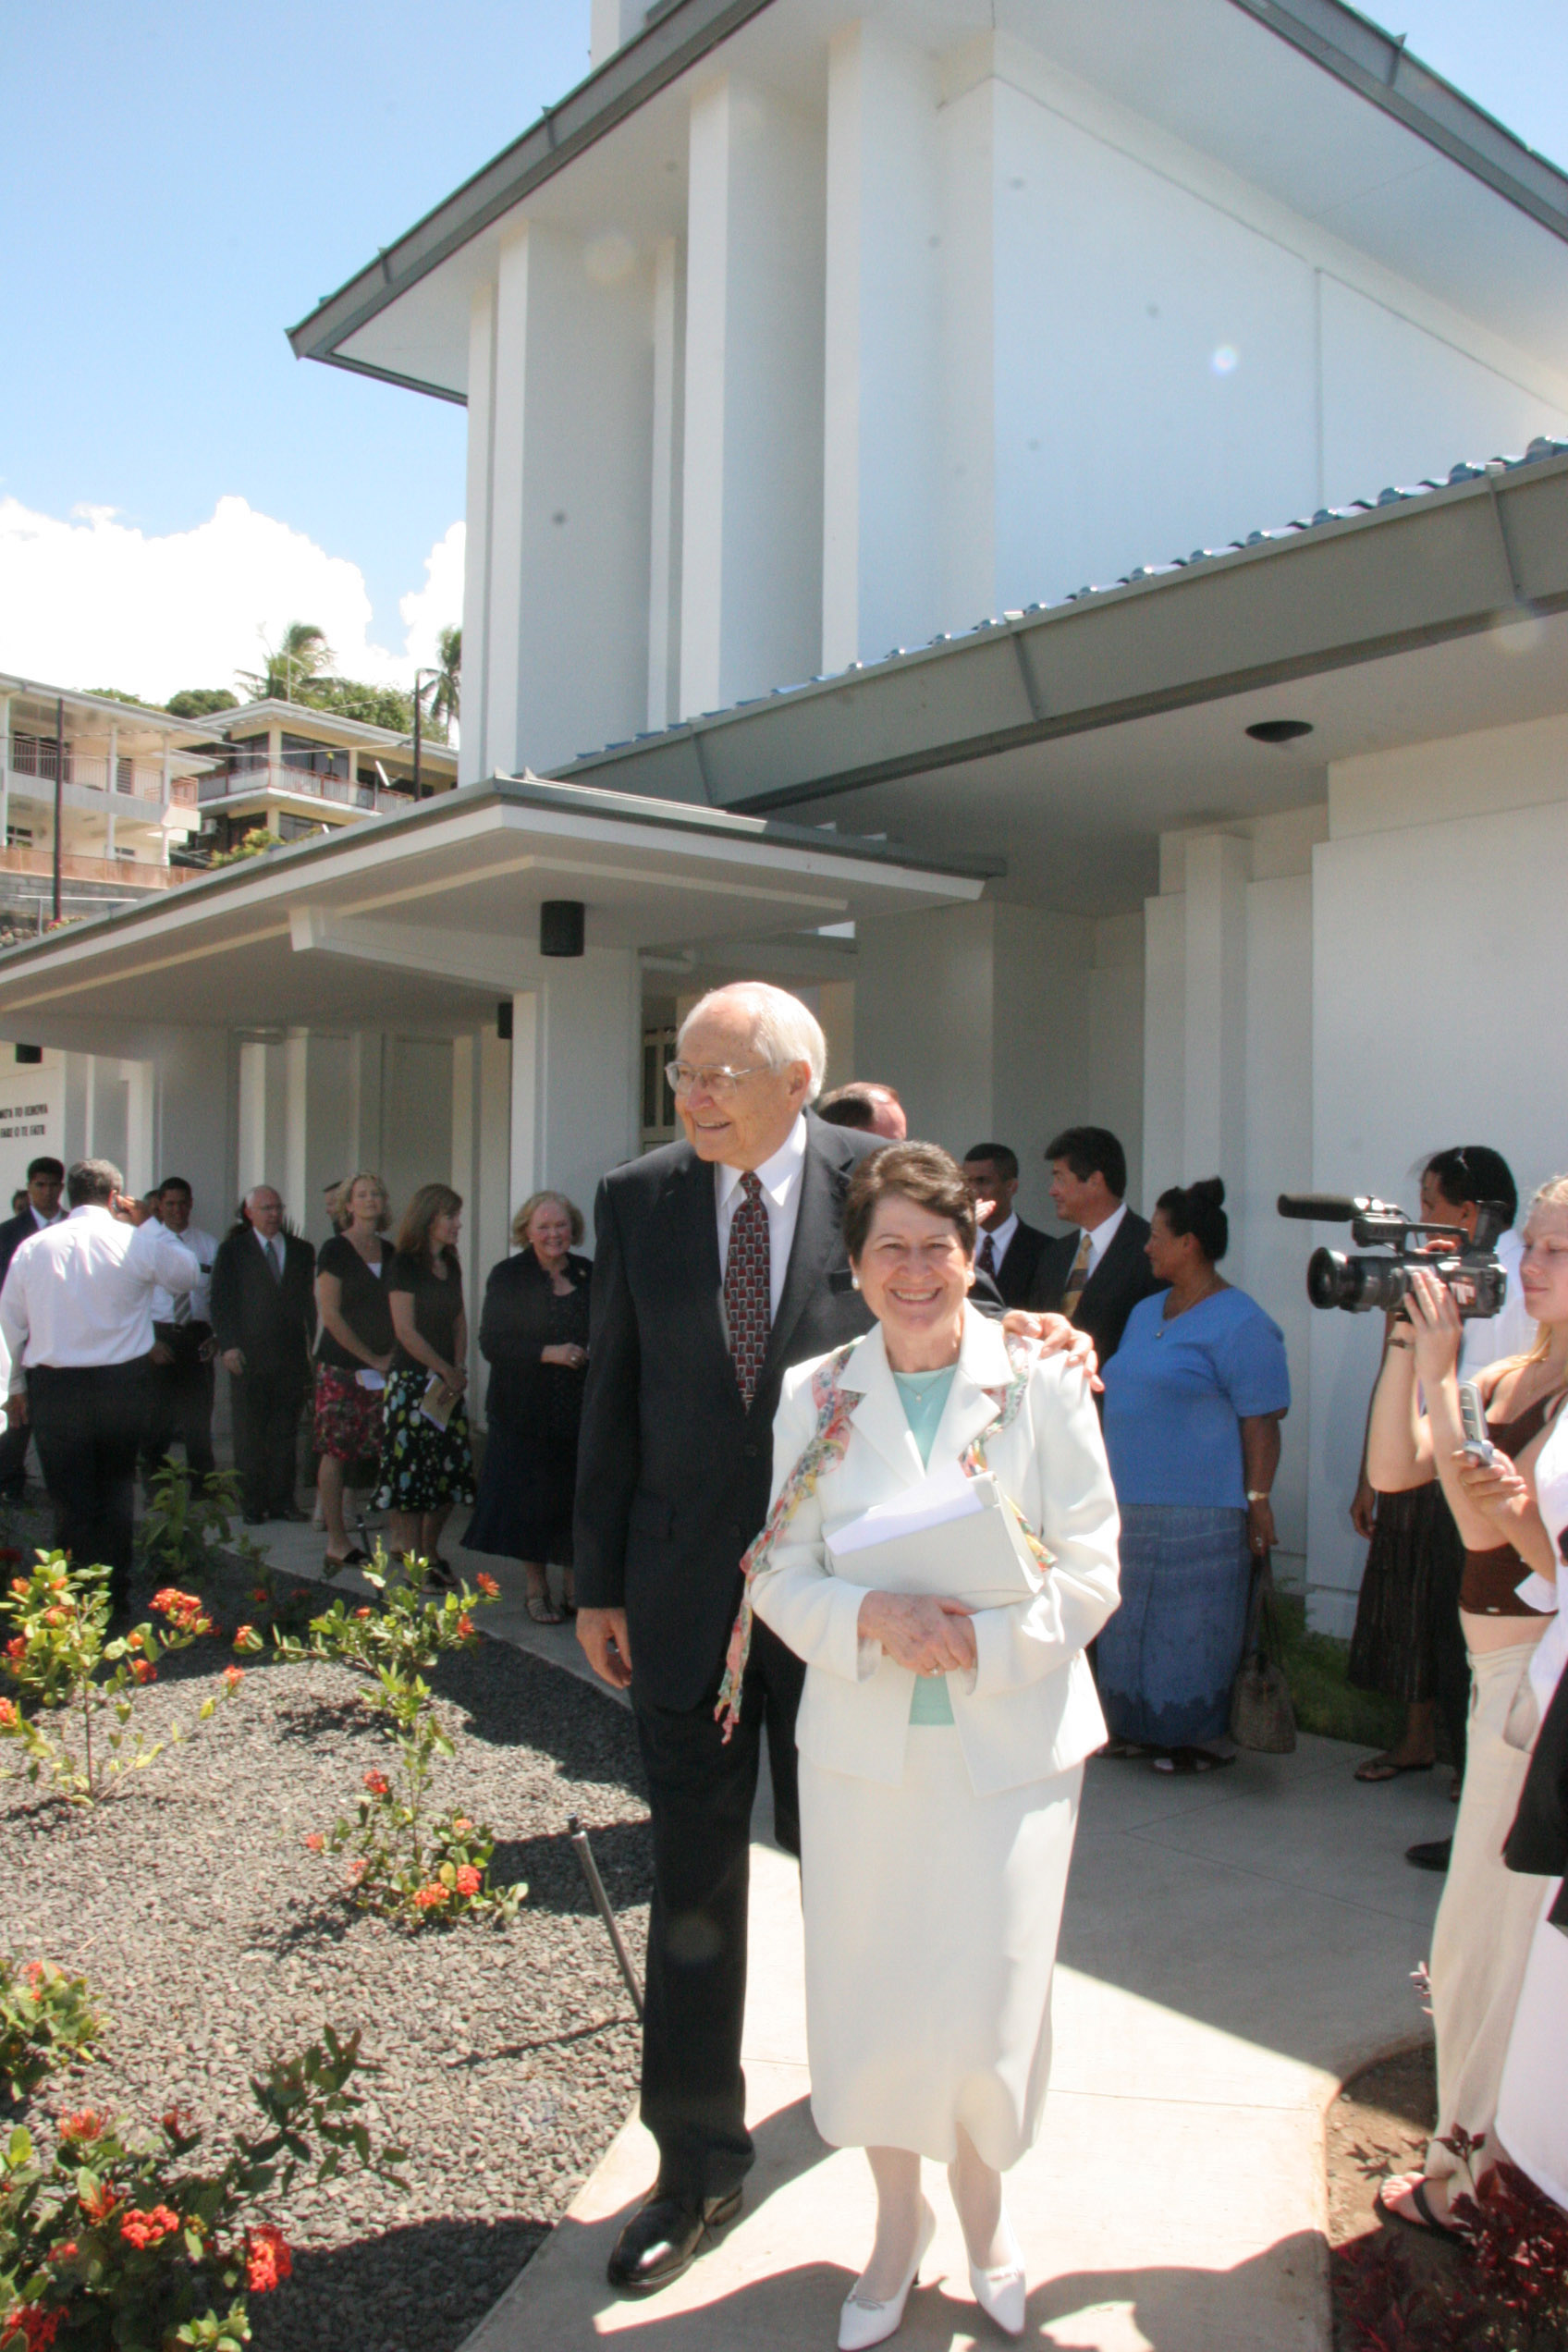 Elder L. Tom Perry, with wife, Sister Barbara Perry, leave Papeete Tahiti Temple grounds after rededicating the Papeete Tahiti Temple on Sunday, Nov. 12, 2006.